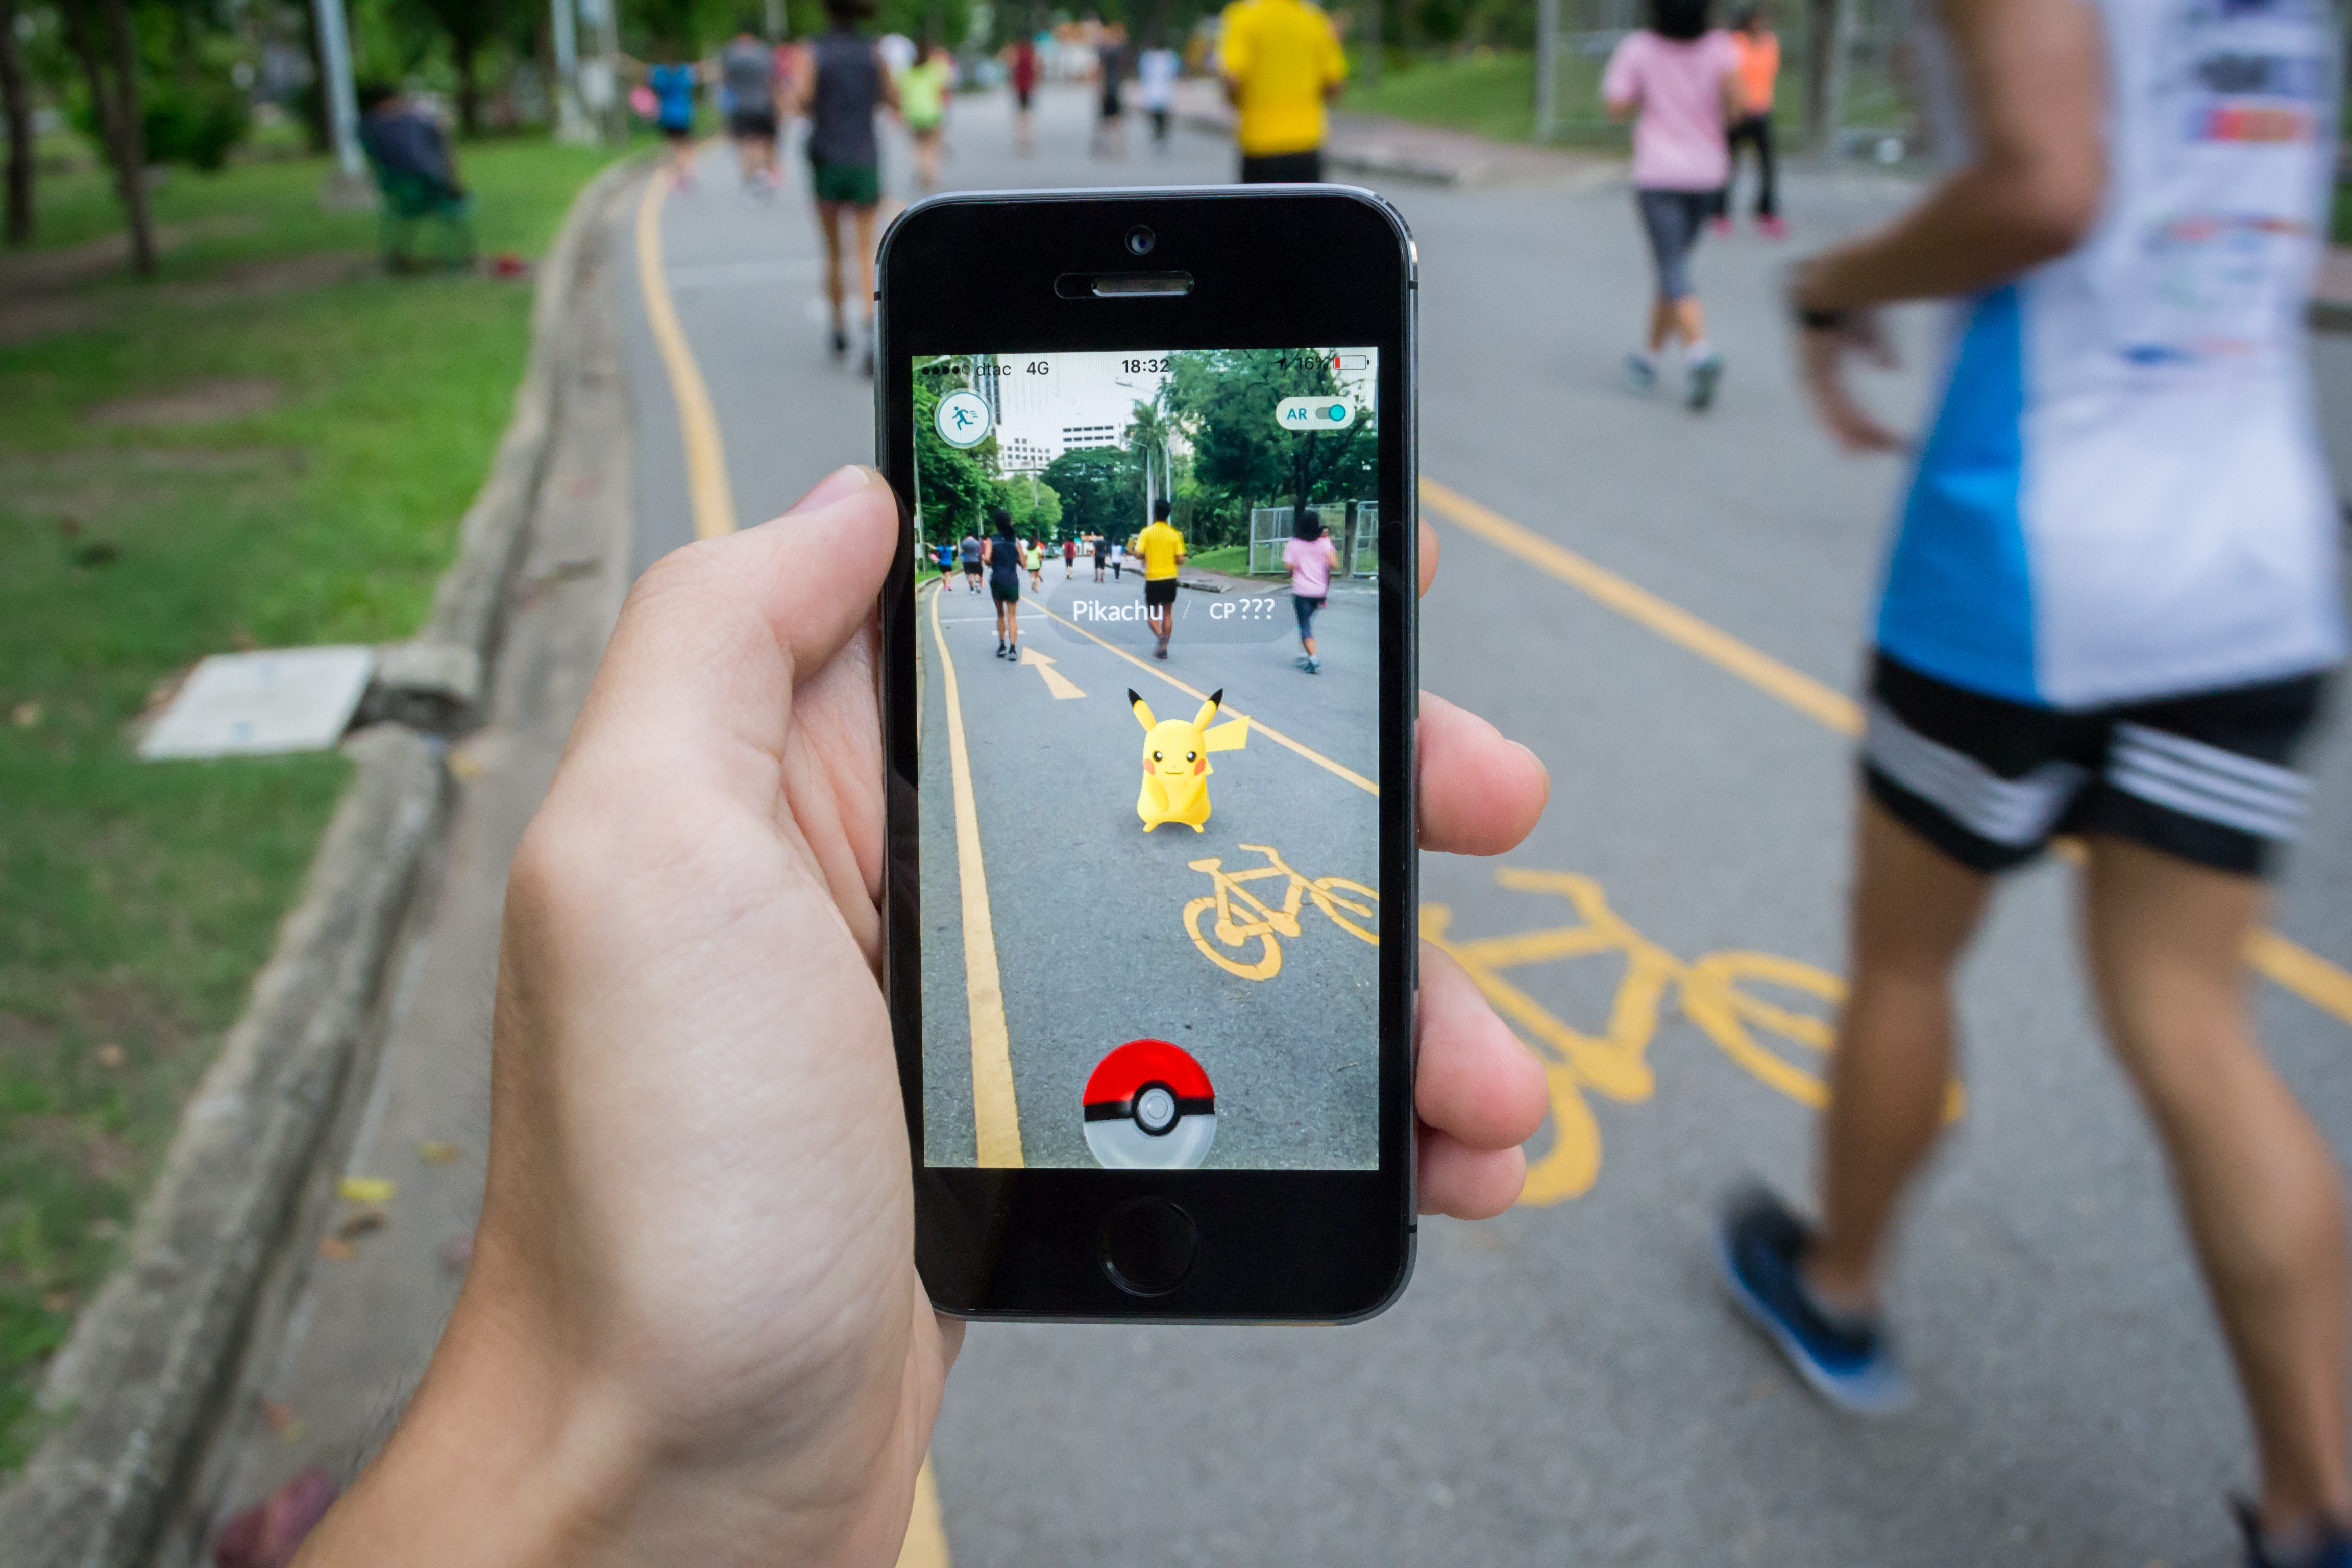 Meet the grandmother who uses Pokémon Go to reconnect with her city